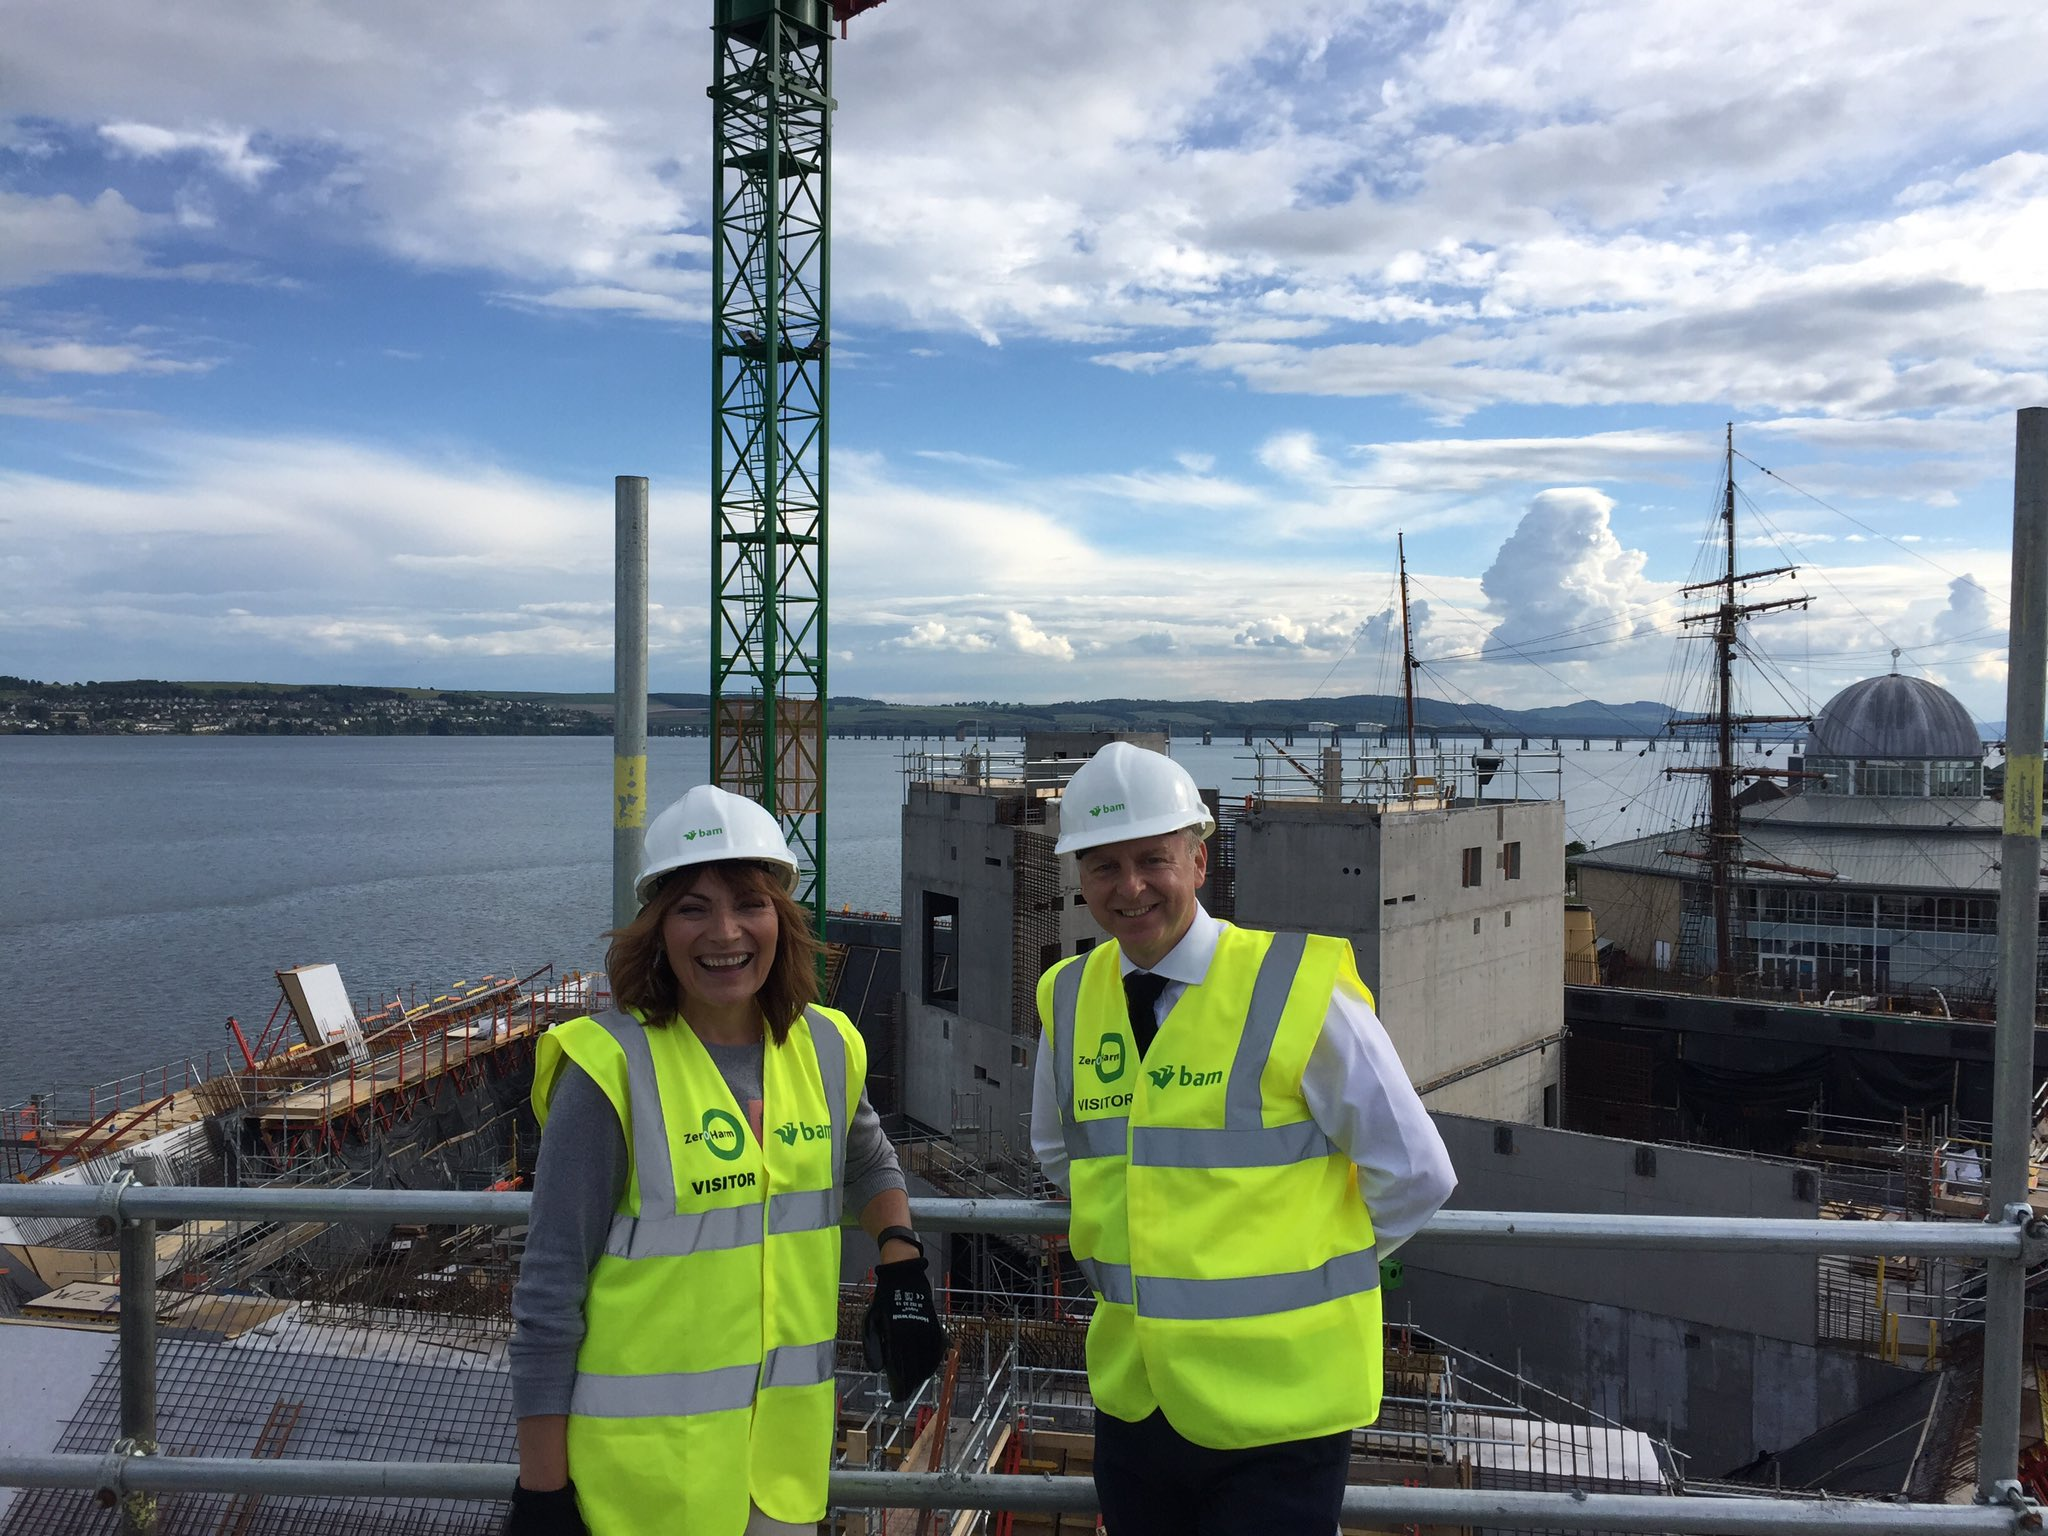 RT @VADundee: Today @reallorraine joined us for a special #fridaysitepic and to see how V&A Dundee is coming on at pace! https://t.co/wFuQ8…